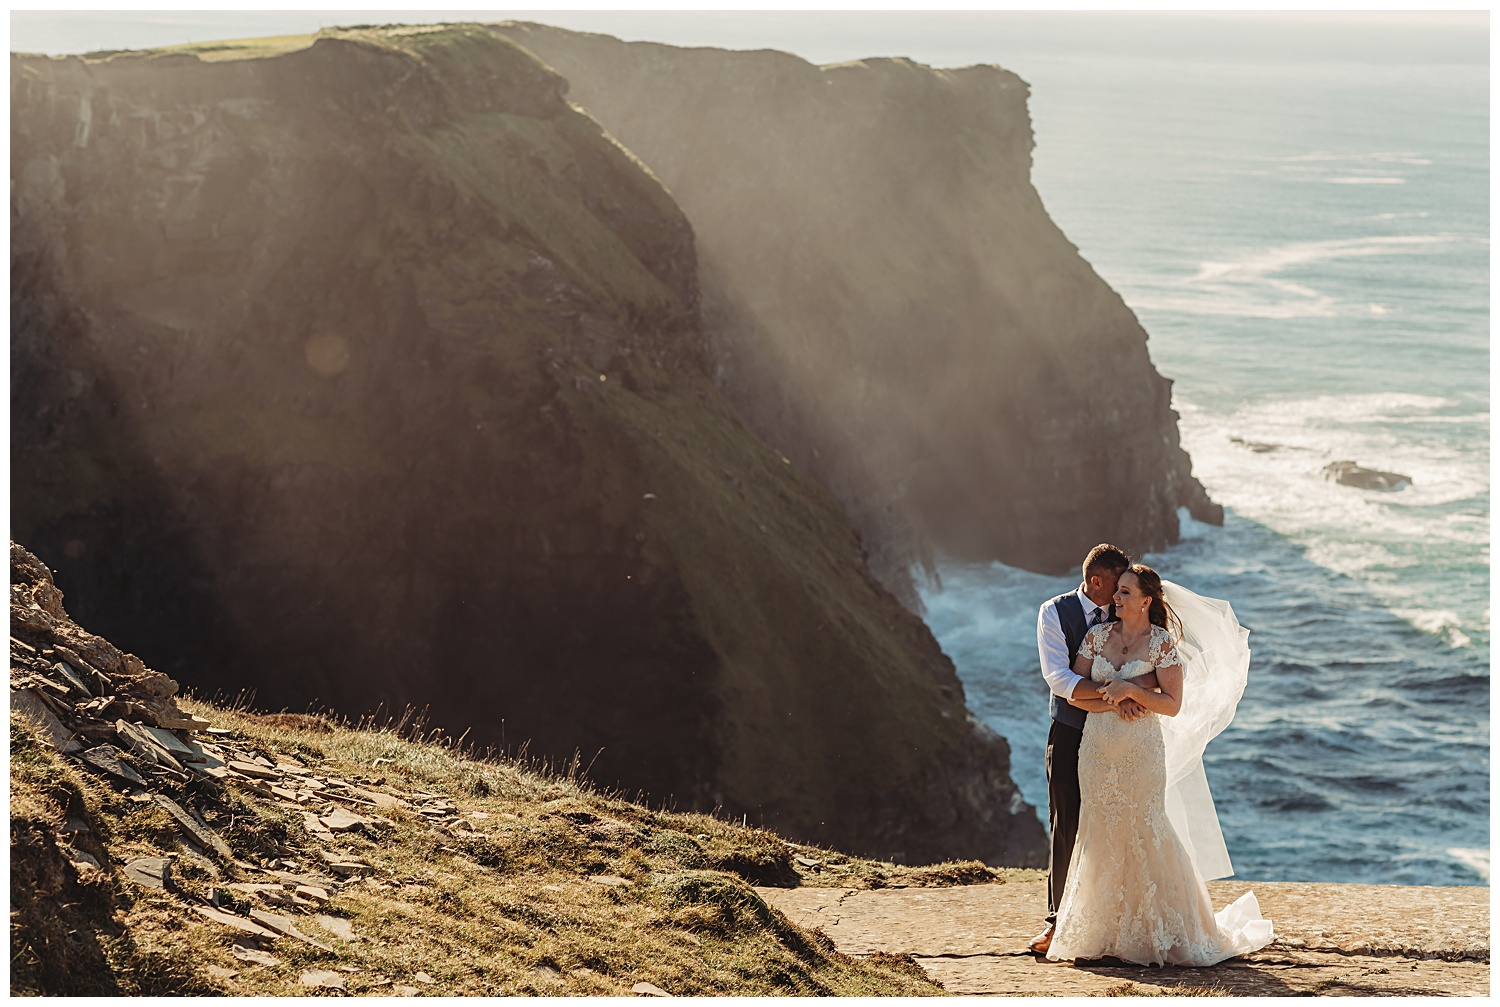 The Cliffs of Moher Destination Wedding Liscannor, County Clare, Ireland_1270.jpg